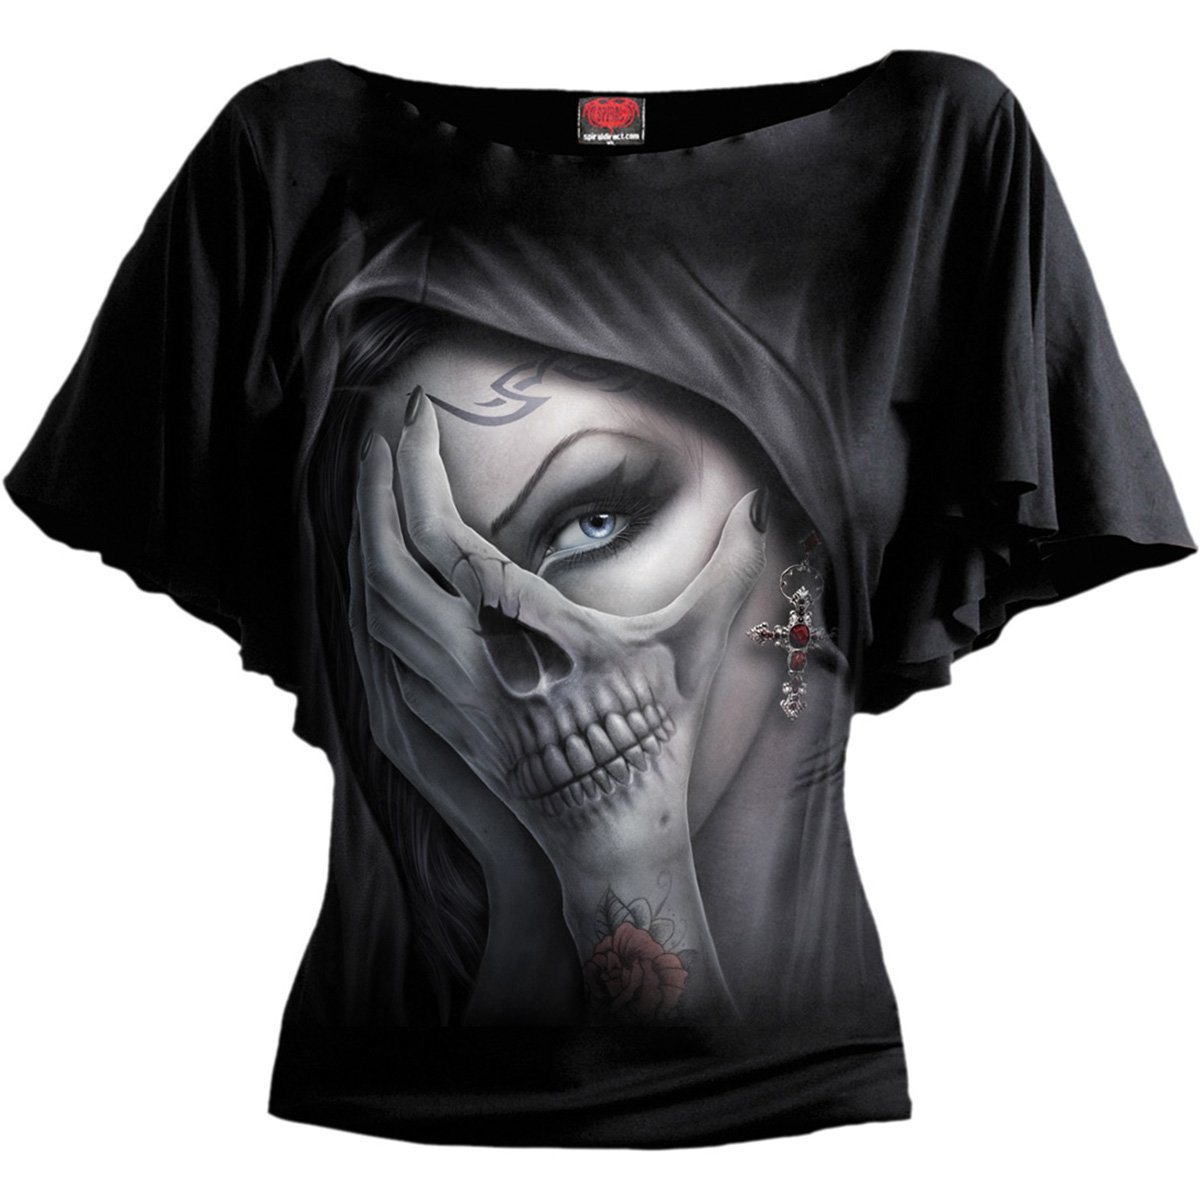 Gothic Enchantress Women's Bat Sleeve Black Top - Rebels Depot